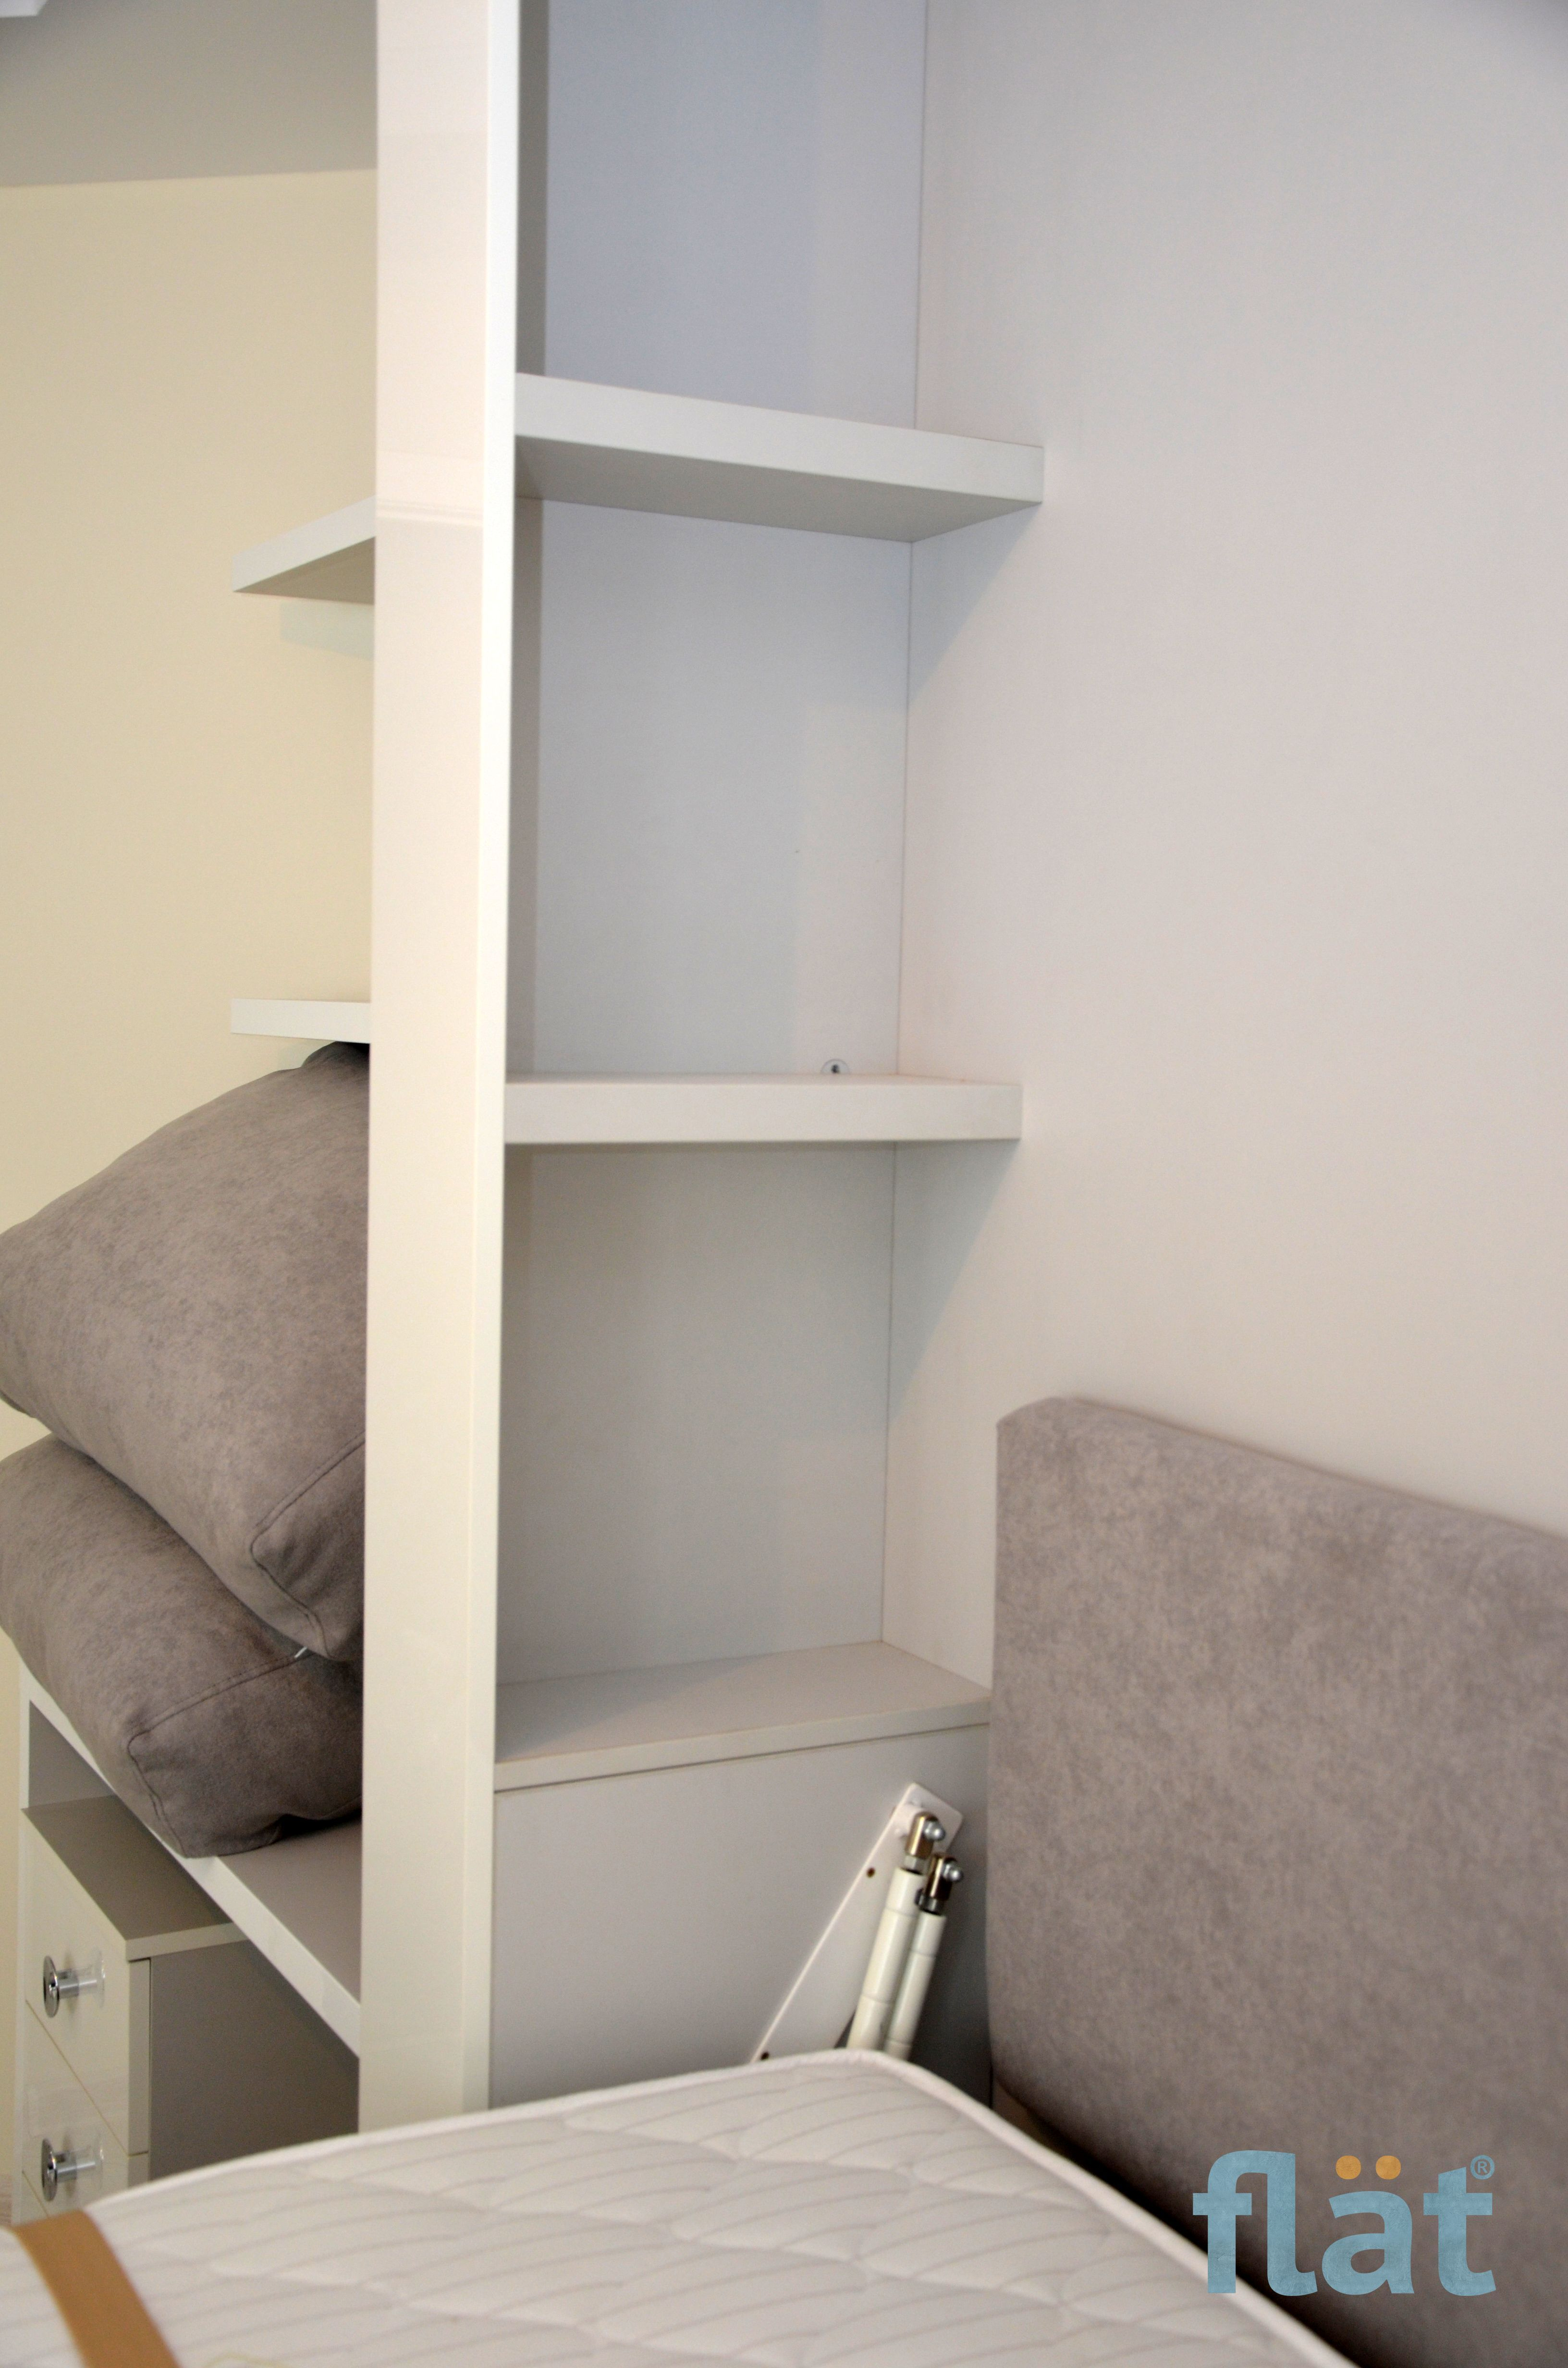 Queen size wall bed with mass storage. Corner room. Проект